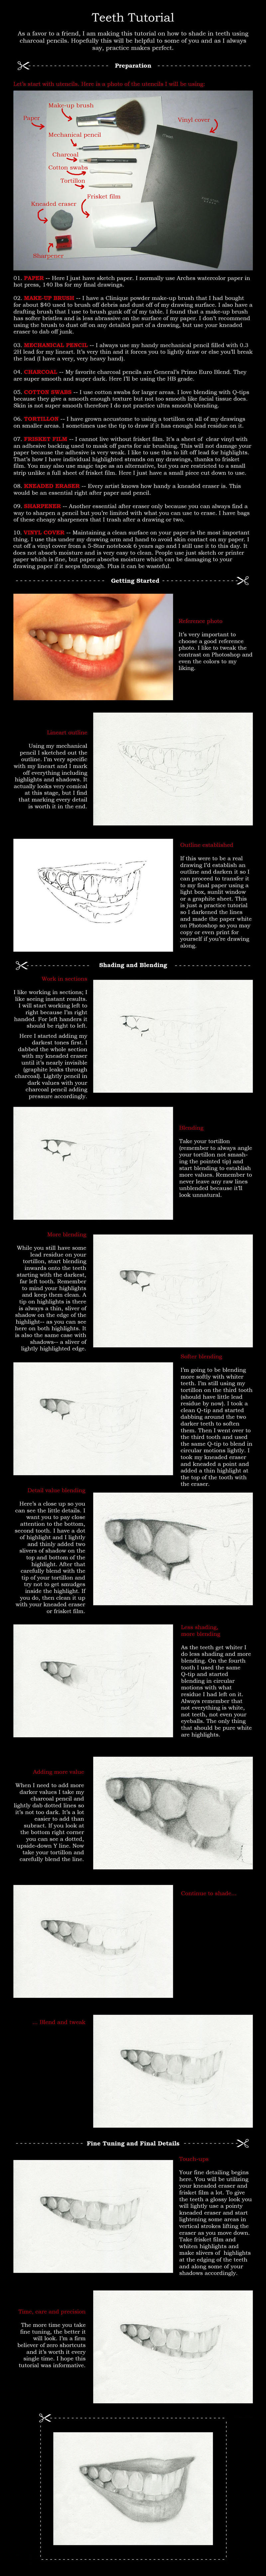 Teeth Tutorial With Charcoal by disdaindespair